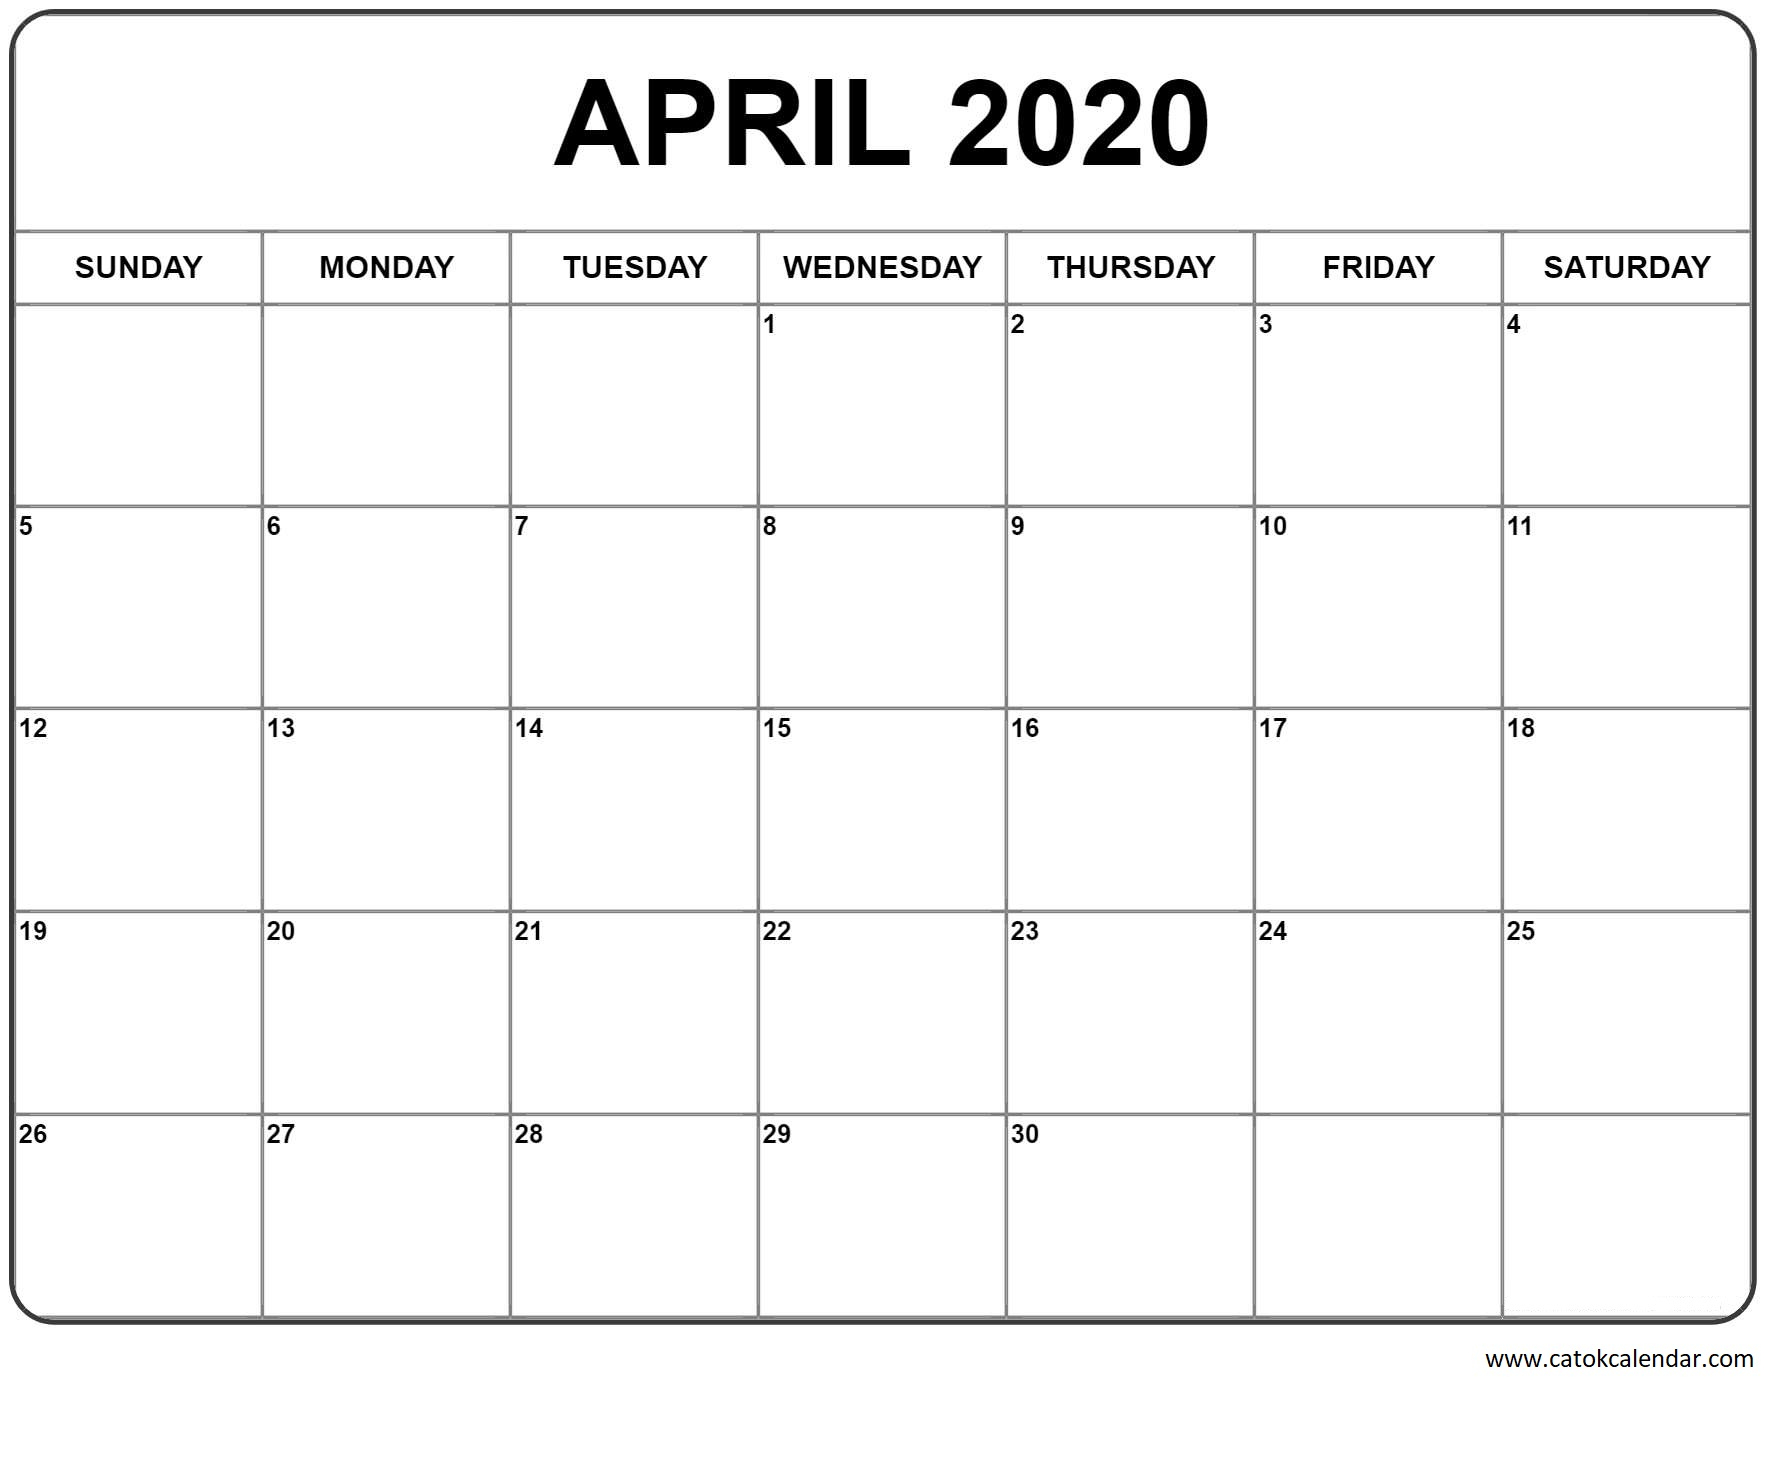 Printable Calendar 2020 – Free Printable Daily, Monthly With Regard To Julian Vs Gregorian Calendar 2021